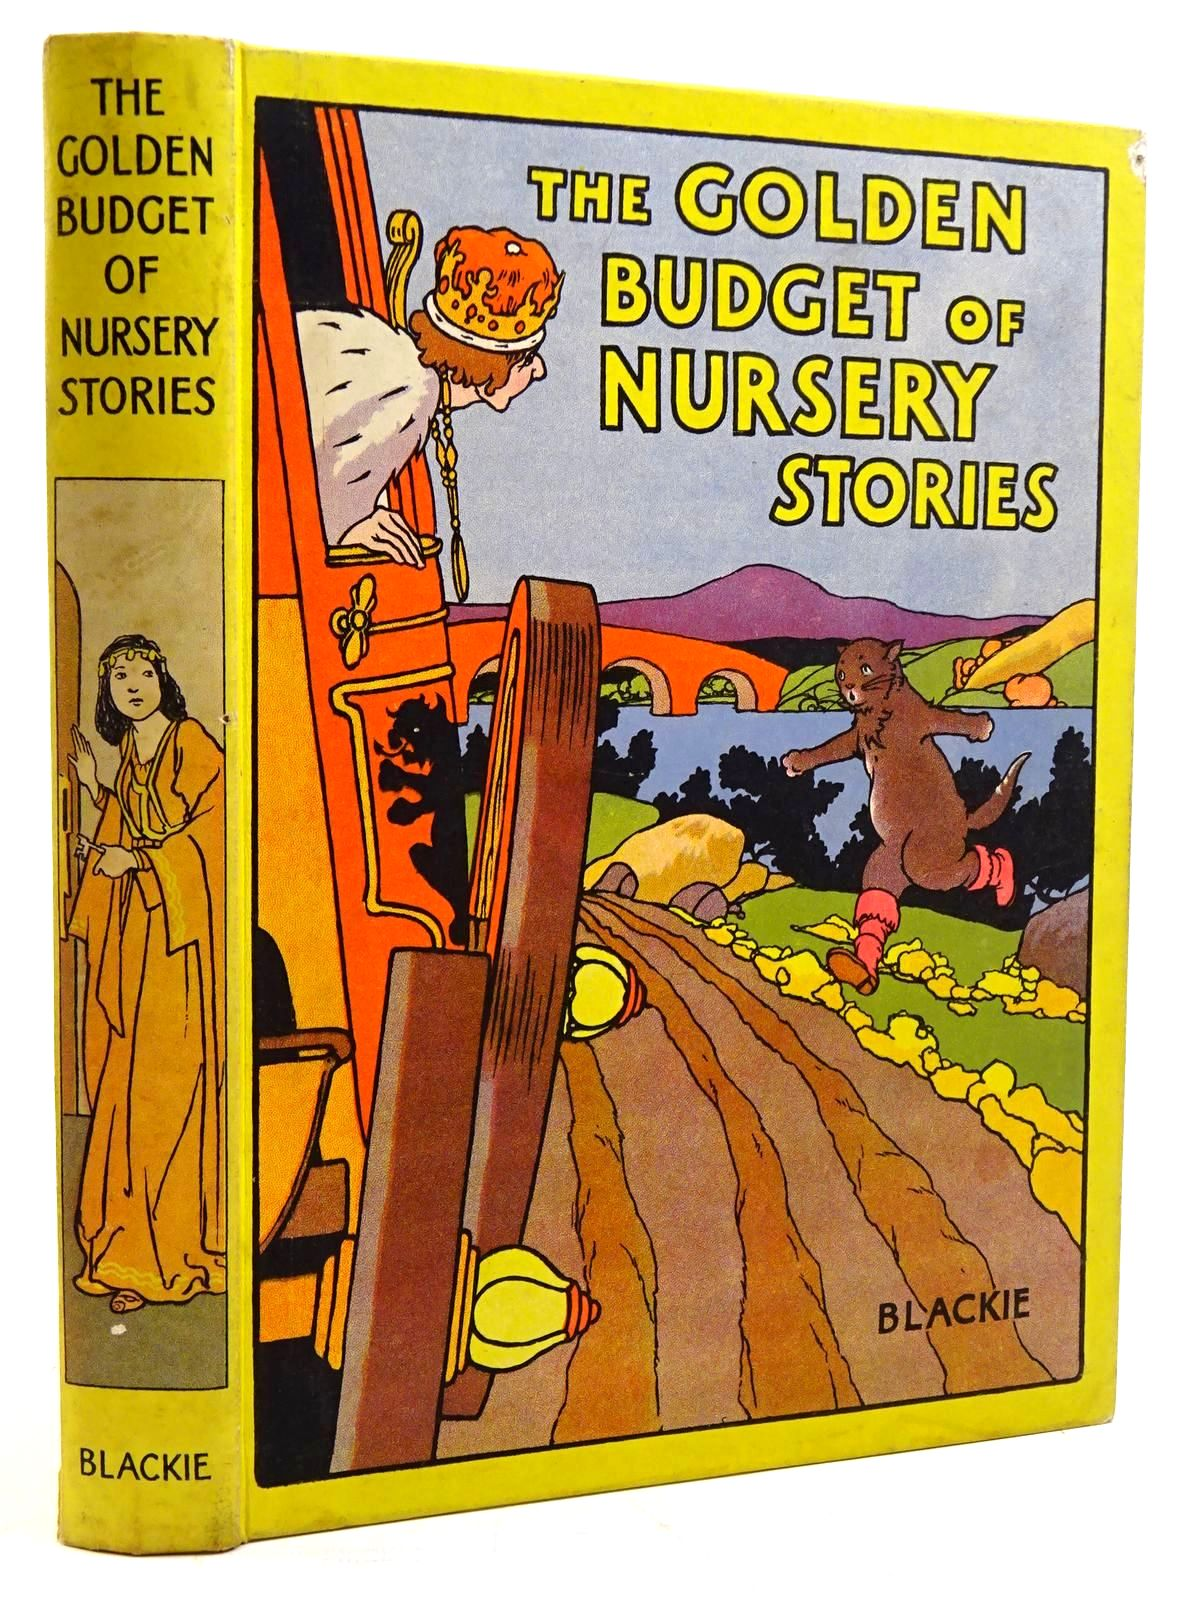 Photo of THE GOLDEN BUDGET OF NURSERY STORIES published by Blackie & Son Ltd. (STOCK CODE: 2131356)  for sale by Stella & Rose's Books